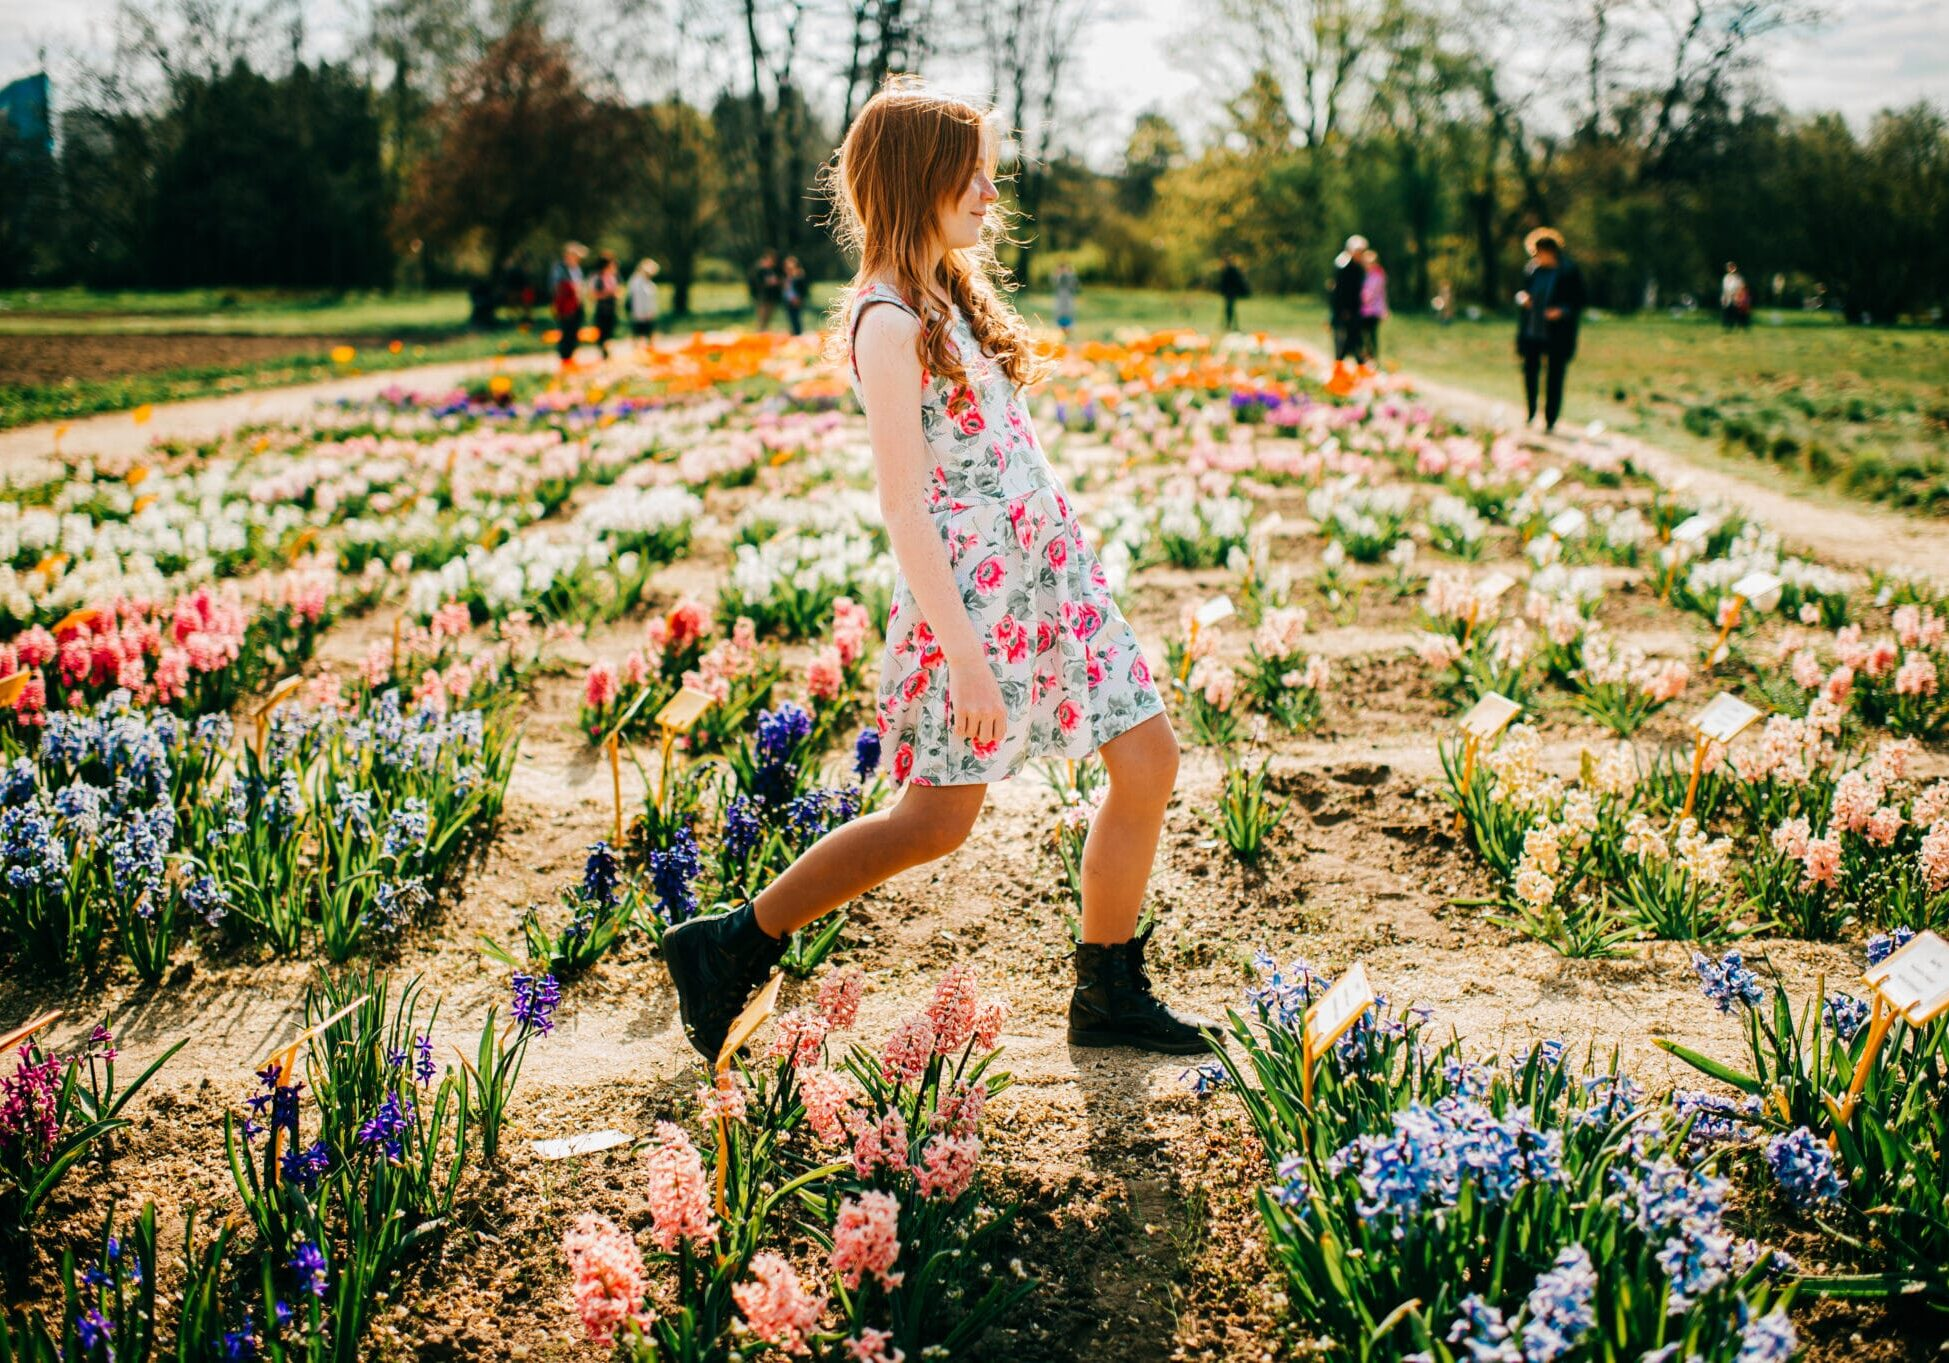 Cheerful young caucasian girl with long red hair and pale skin in flowers dress enjoys of the big flower garden.